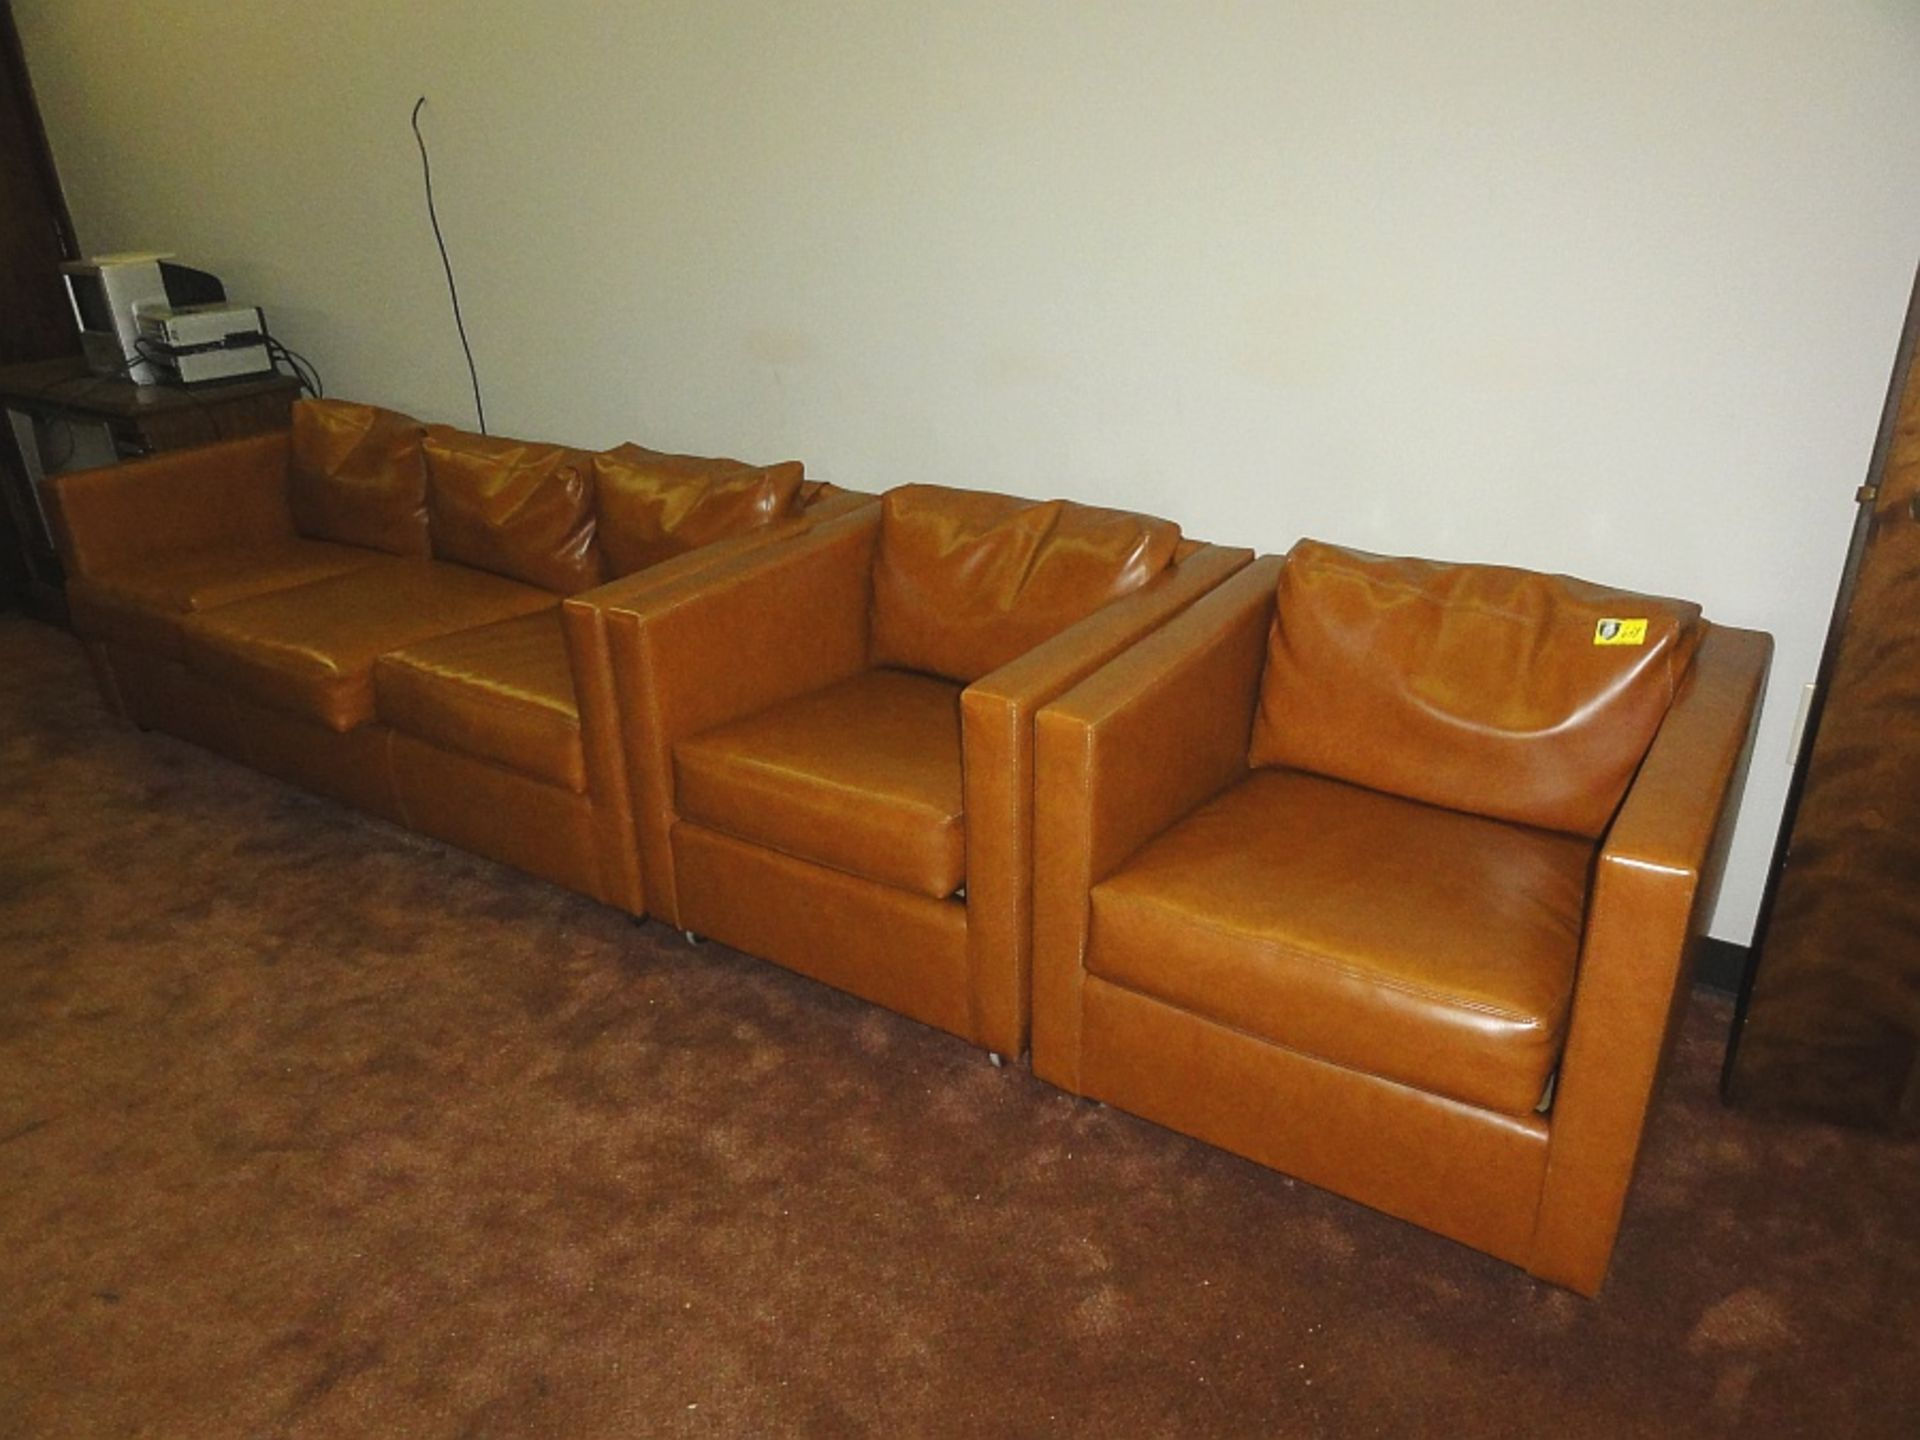 Lot 638 - Upholstered Sofa & 2 Club Chairs